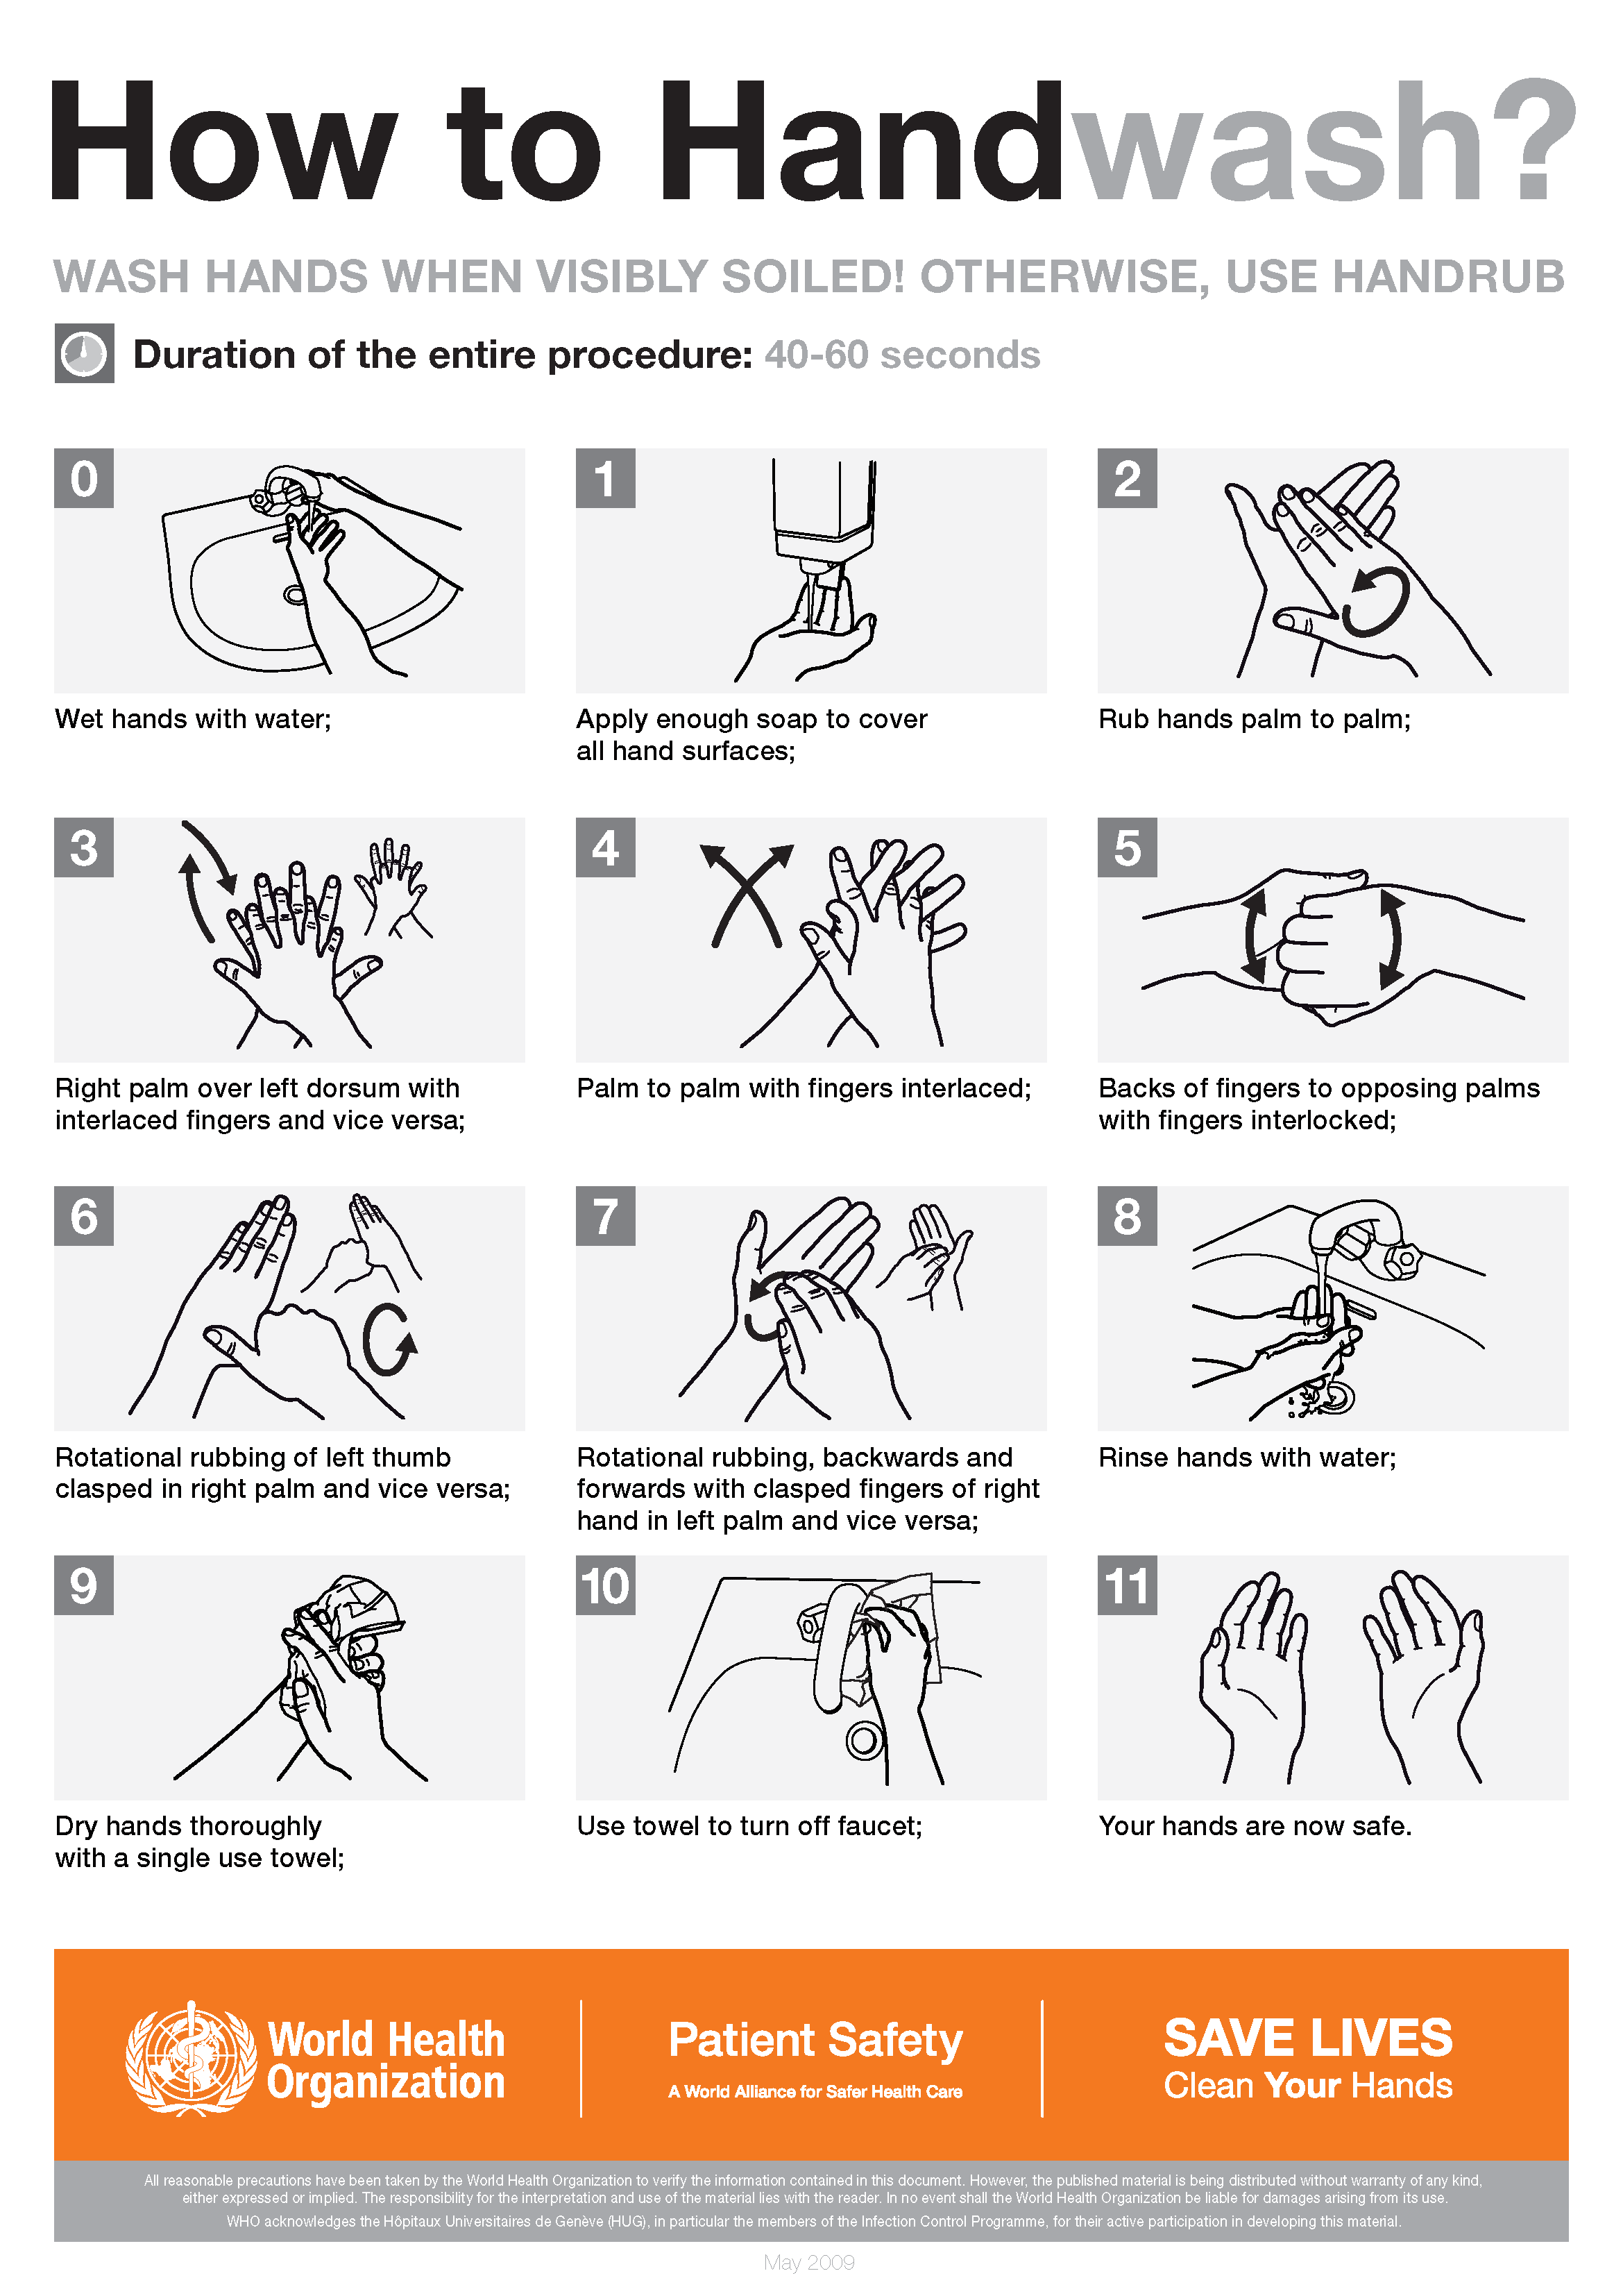 Guide to washing your hands by the World Health Organization